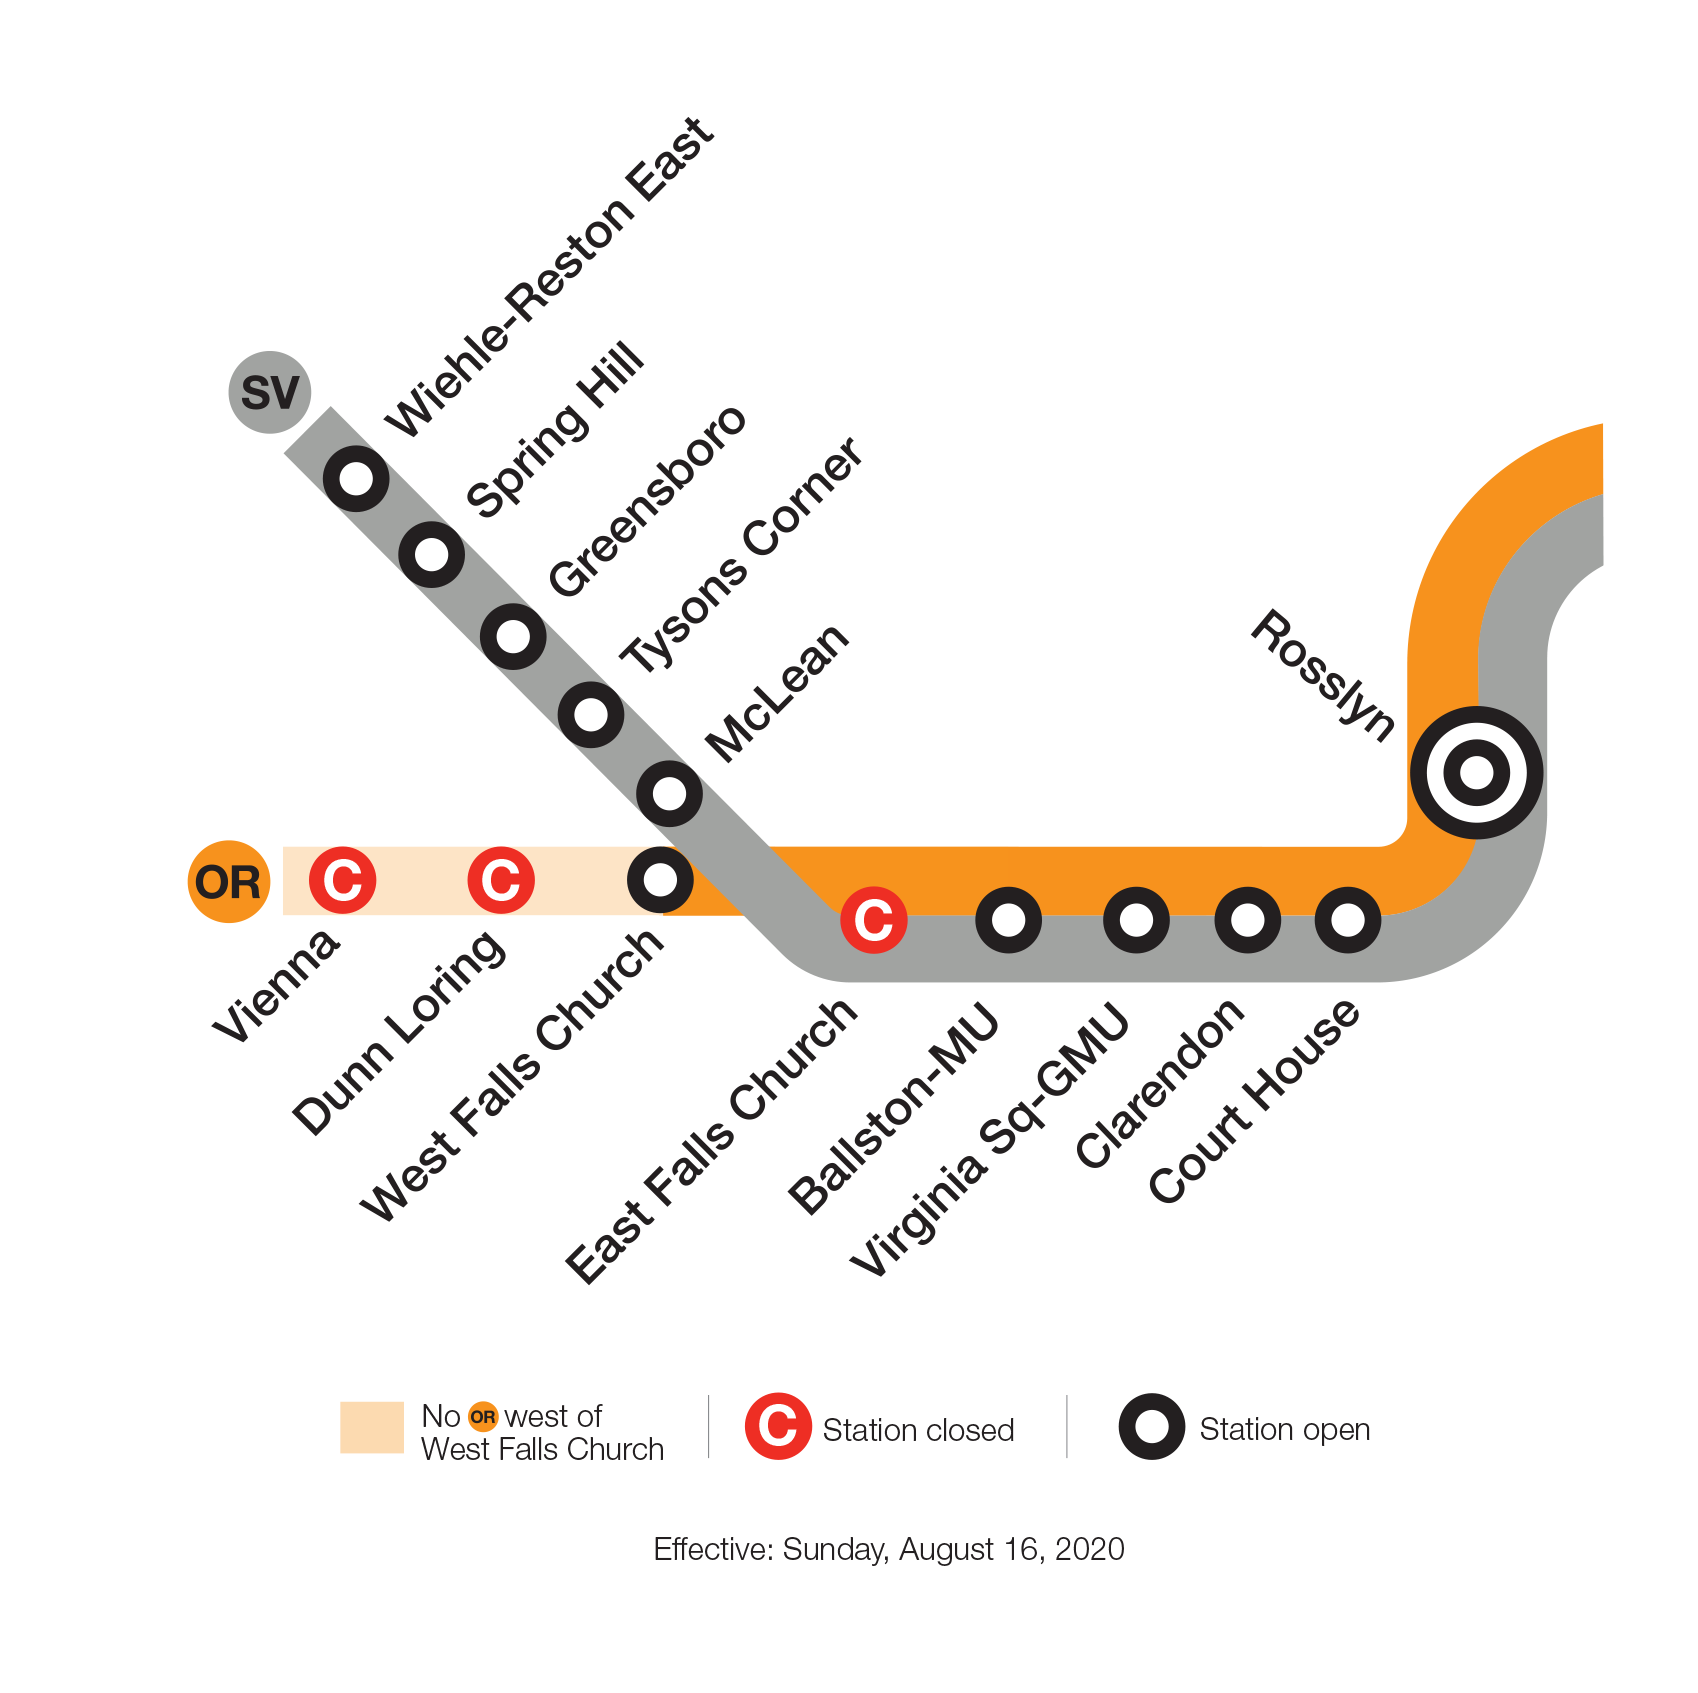 Effective Sunday, August 16, Silver Line service will resume, and West Falls Church will be open for rail service. Vienna, Dunn Loring and East Falls Church are closed through Monday, Sept. 7.